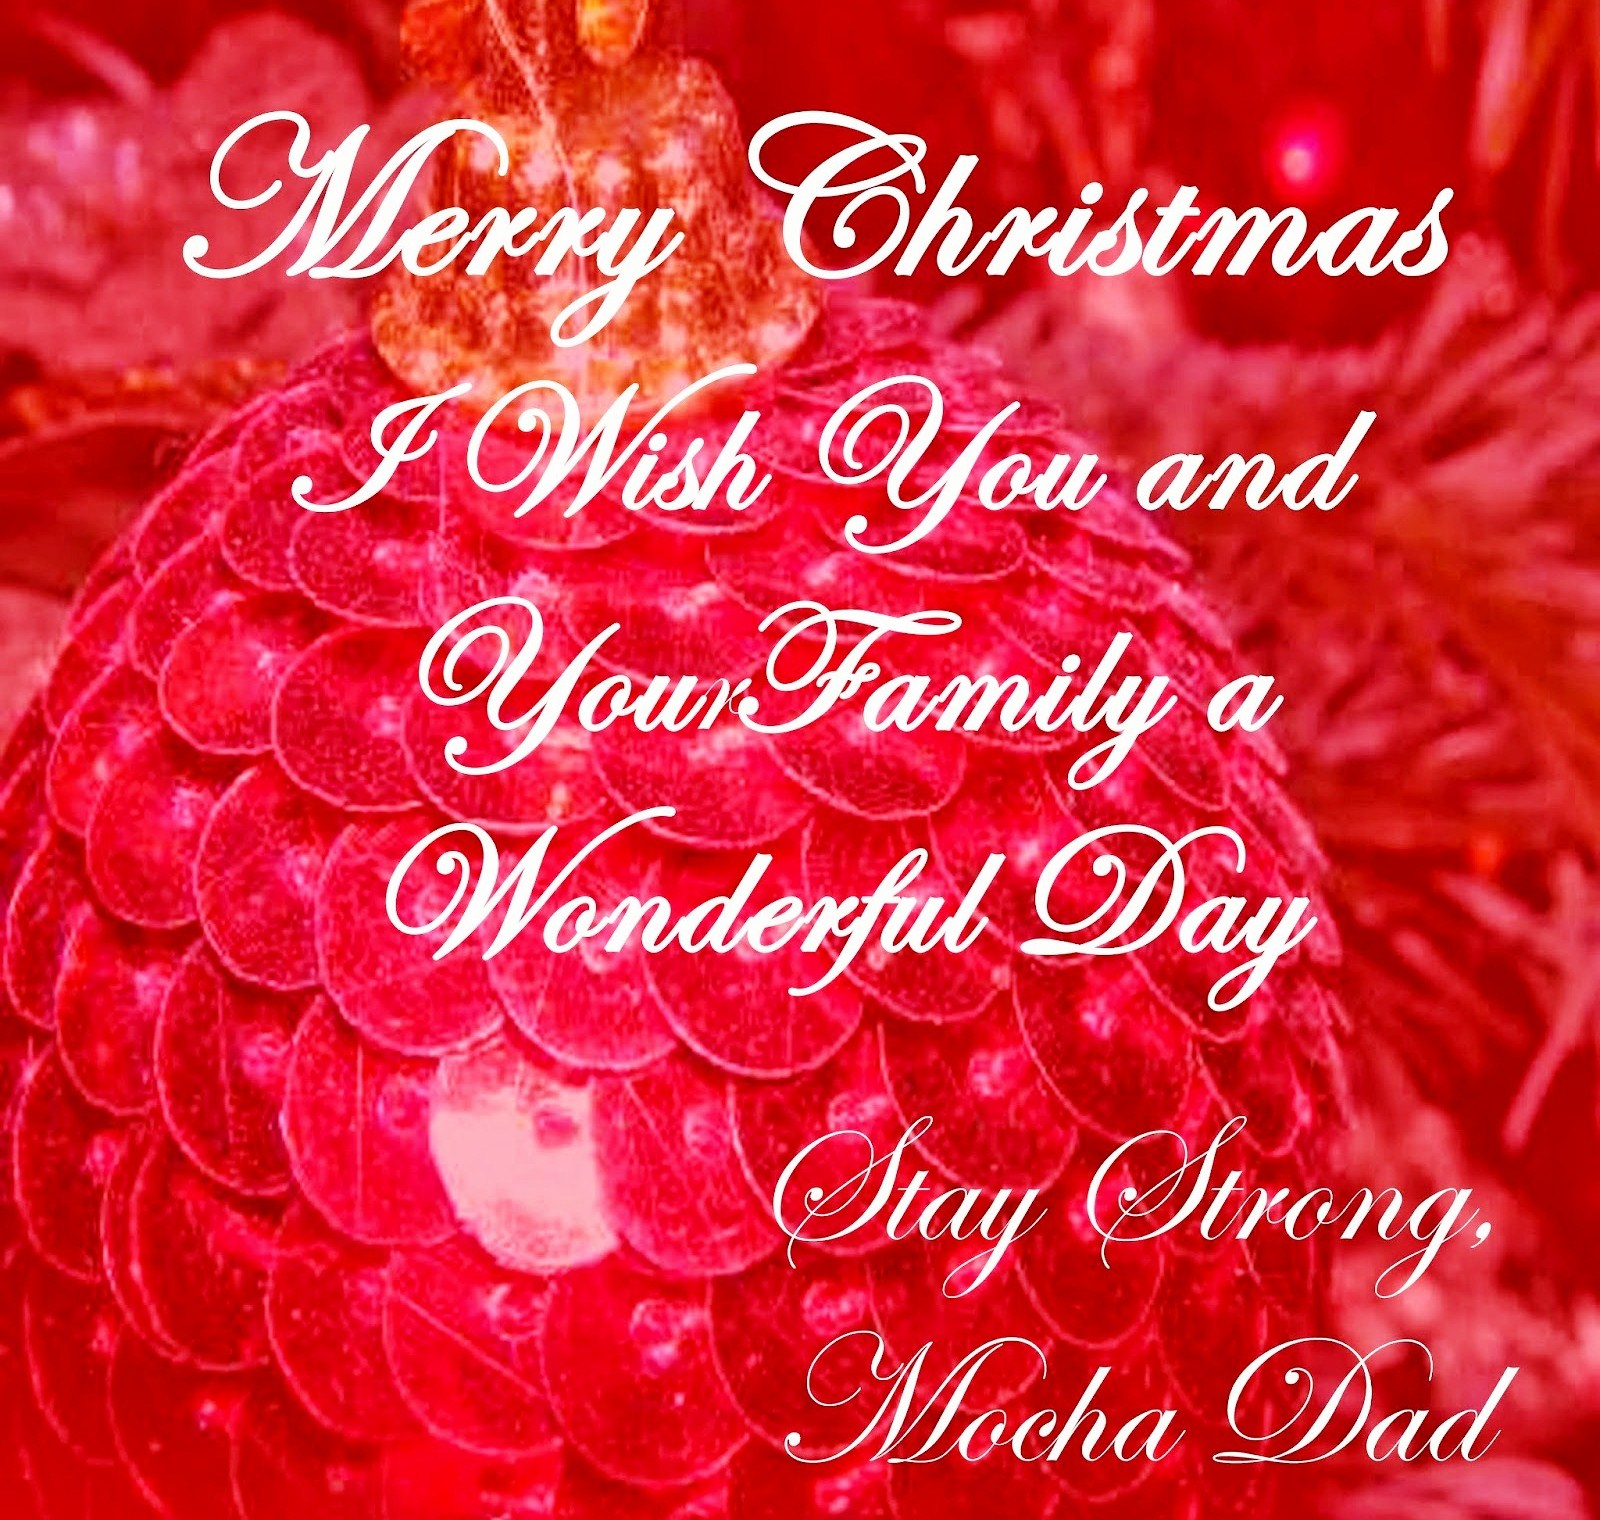 Quotes about christmas greetings 27 quotes httpcontactnumberschristmas quotes wallpapers 2013 2013 happy xmas quotes download free christmas greeting cards pictures photos m4hsunfo